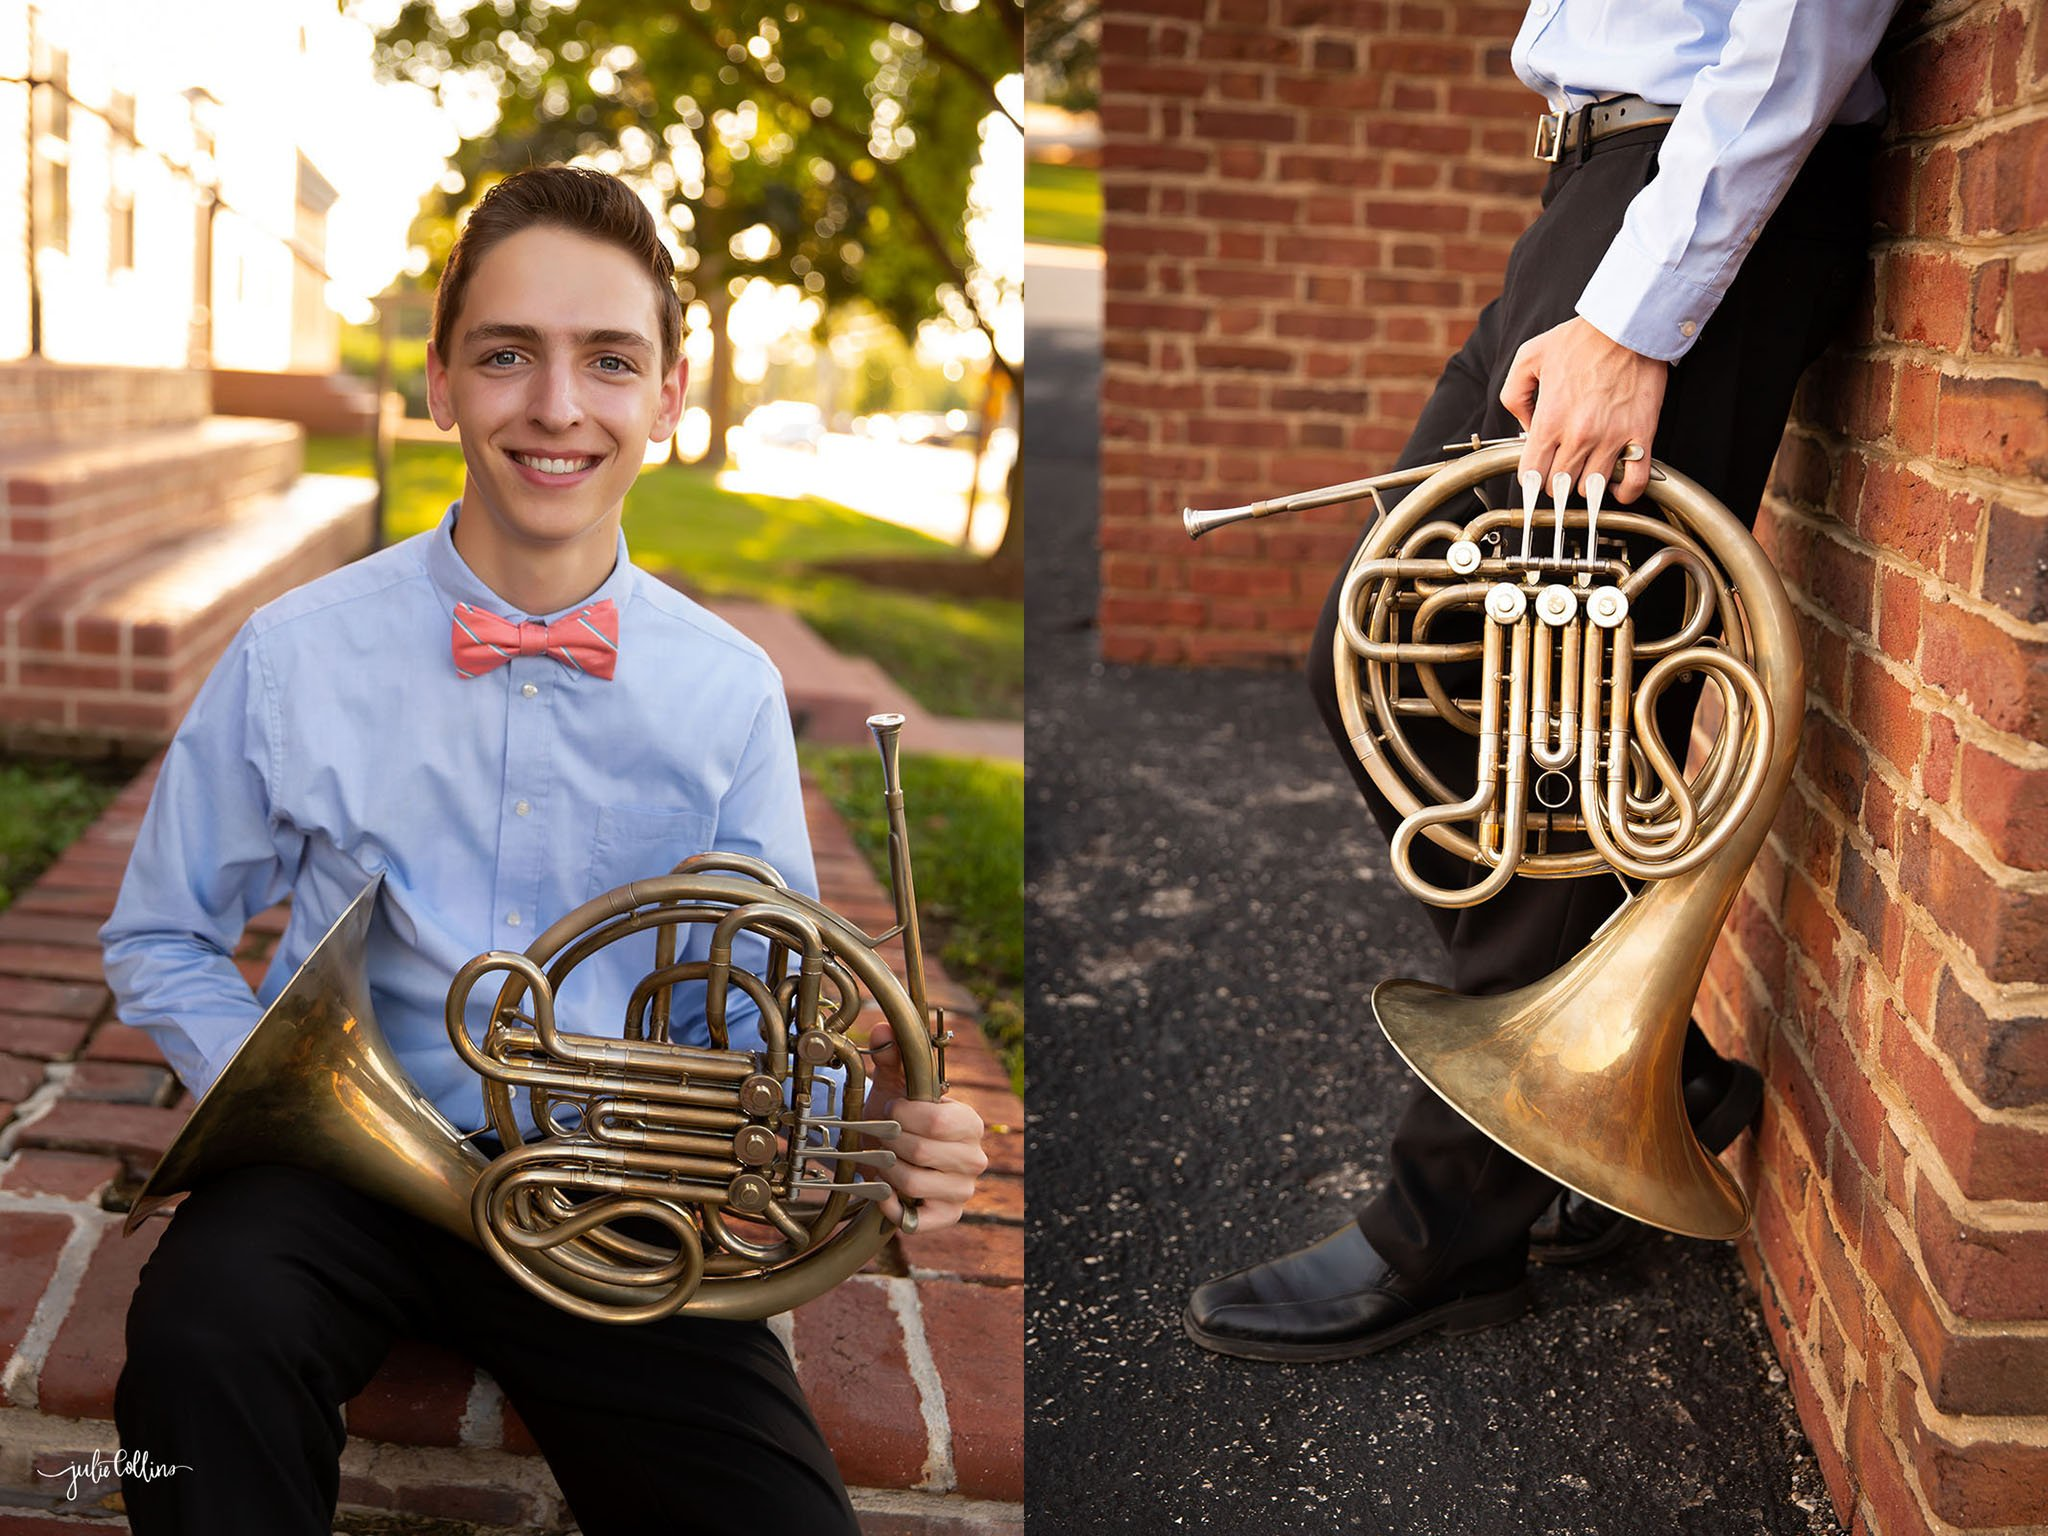 Oconomowoc High School senior boy with french horn smiling for camera downtown Delafield, Wisconsin